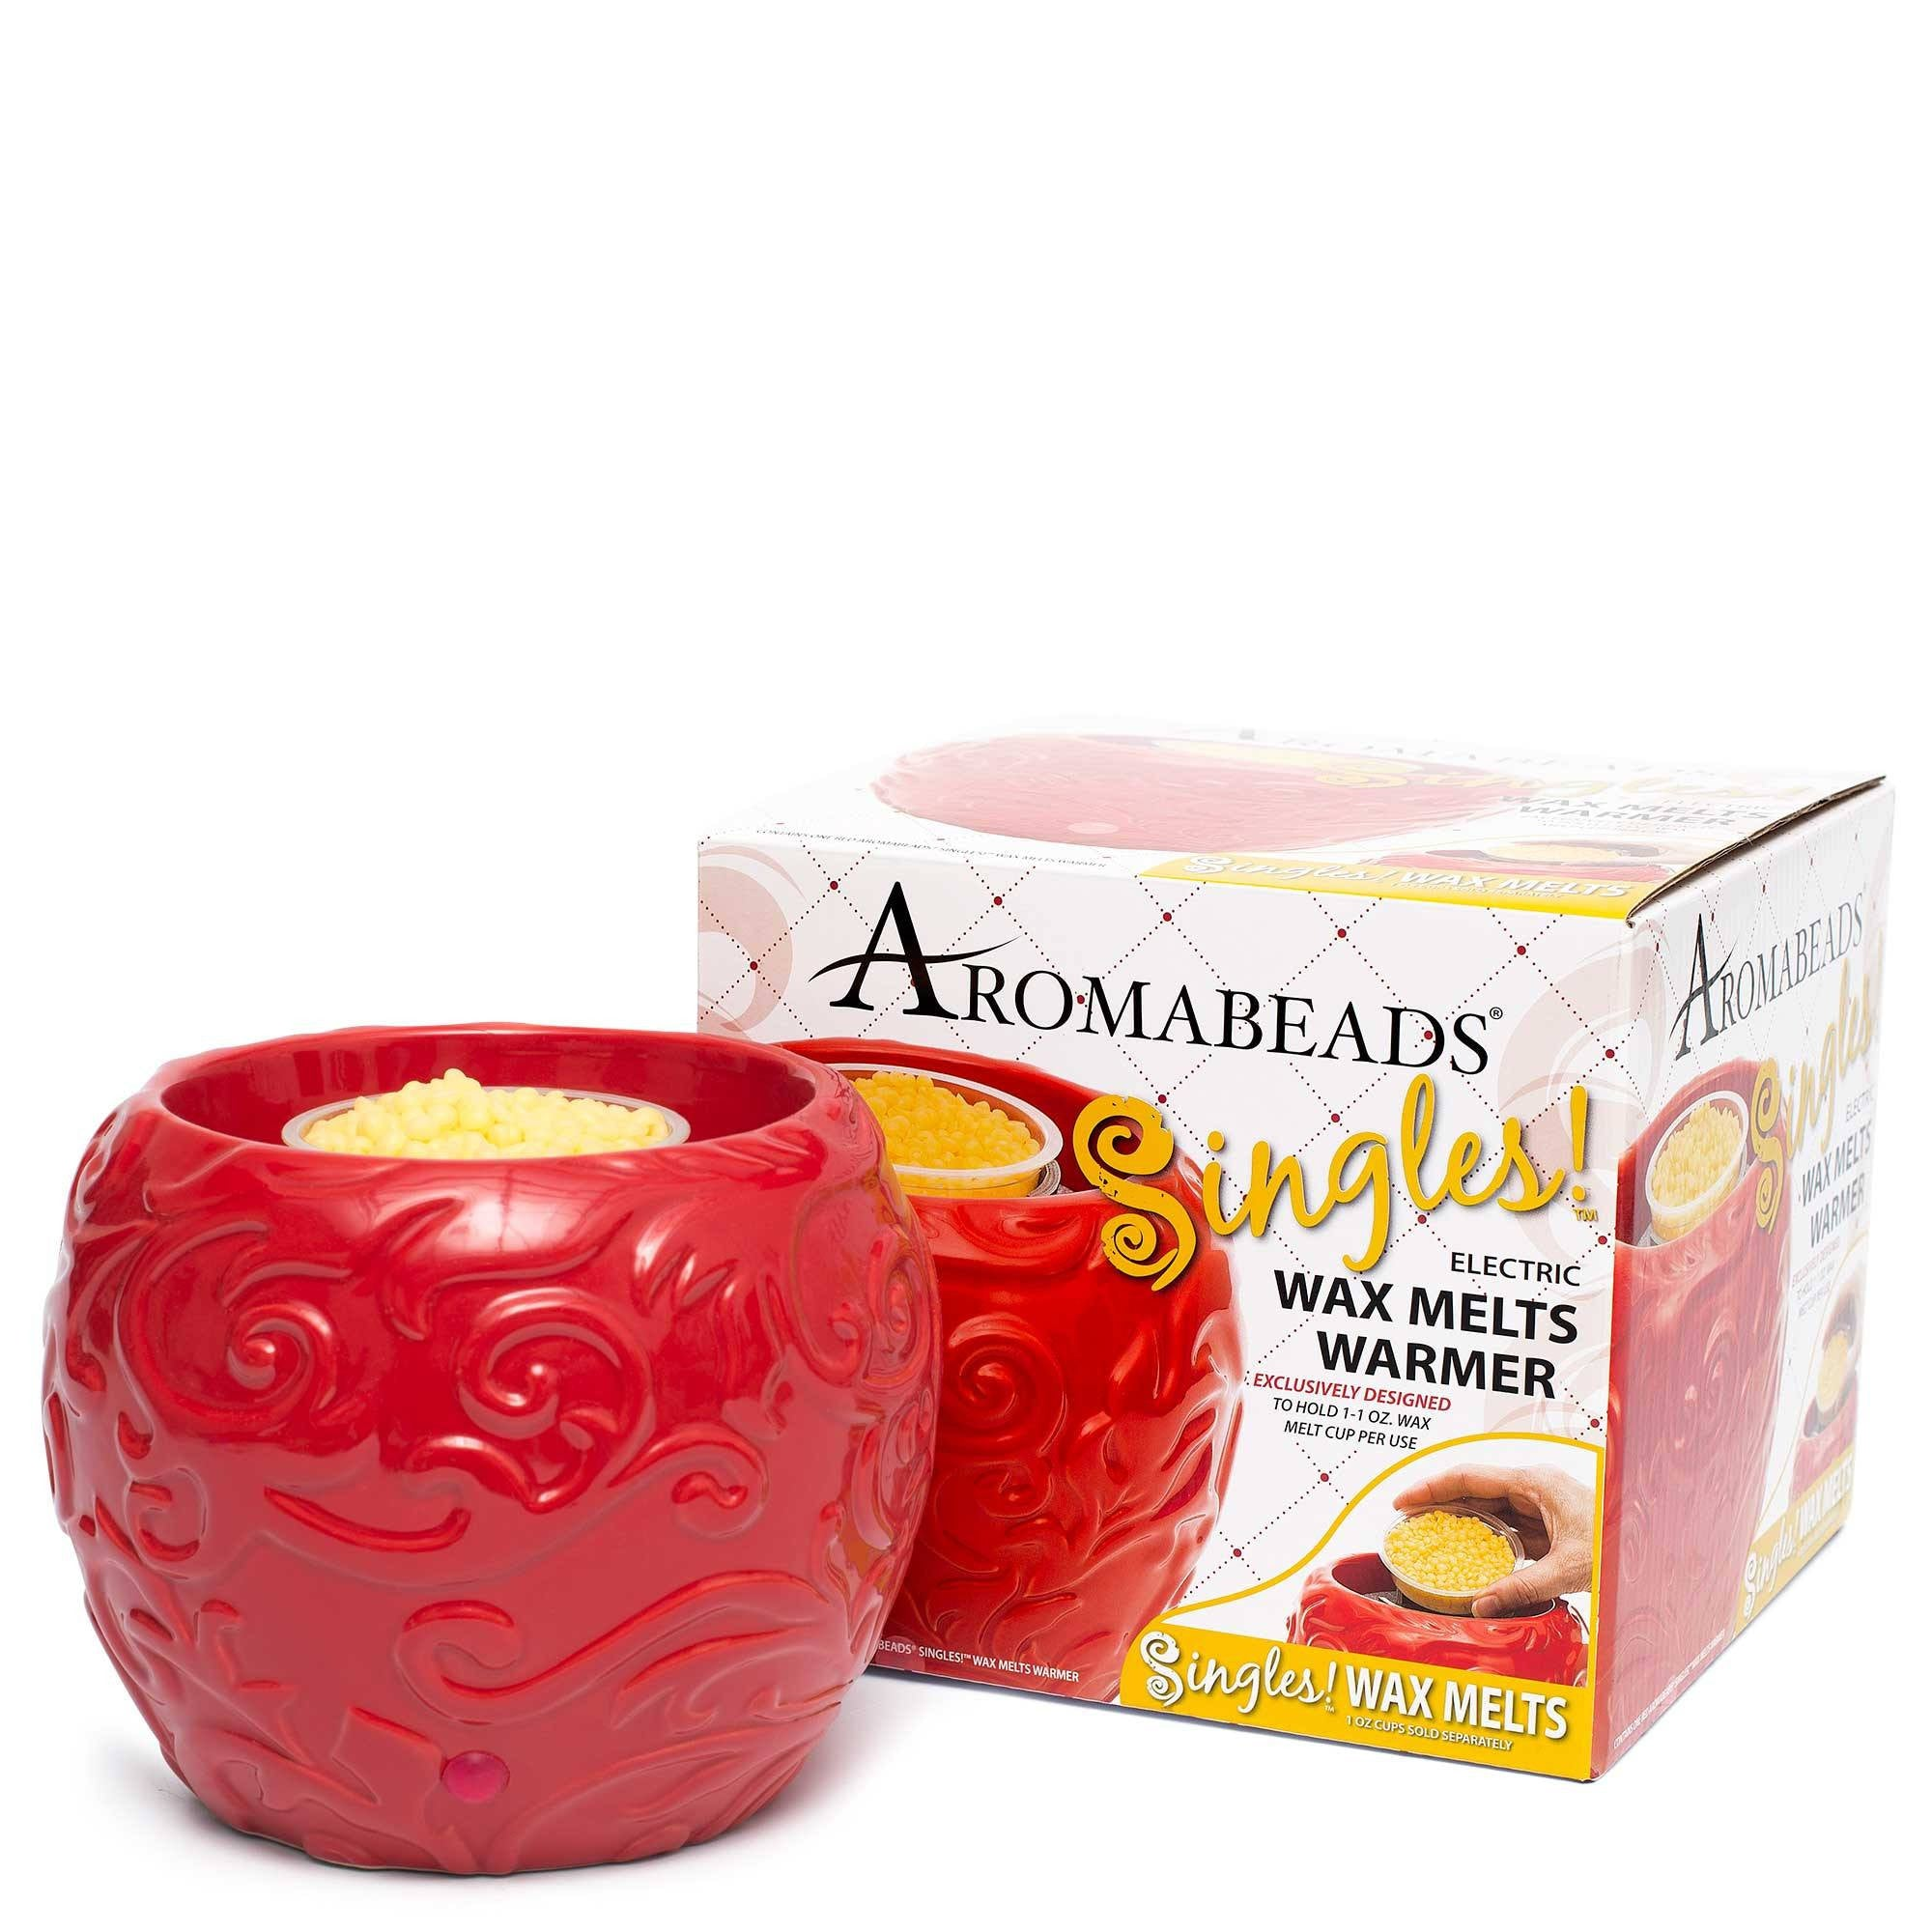 Aromabeads Singles Warm Butter Cookie Scented Wax Melts - Candlemart.com - 3